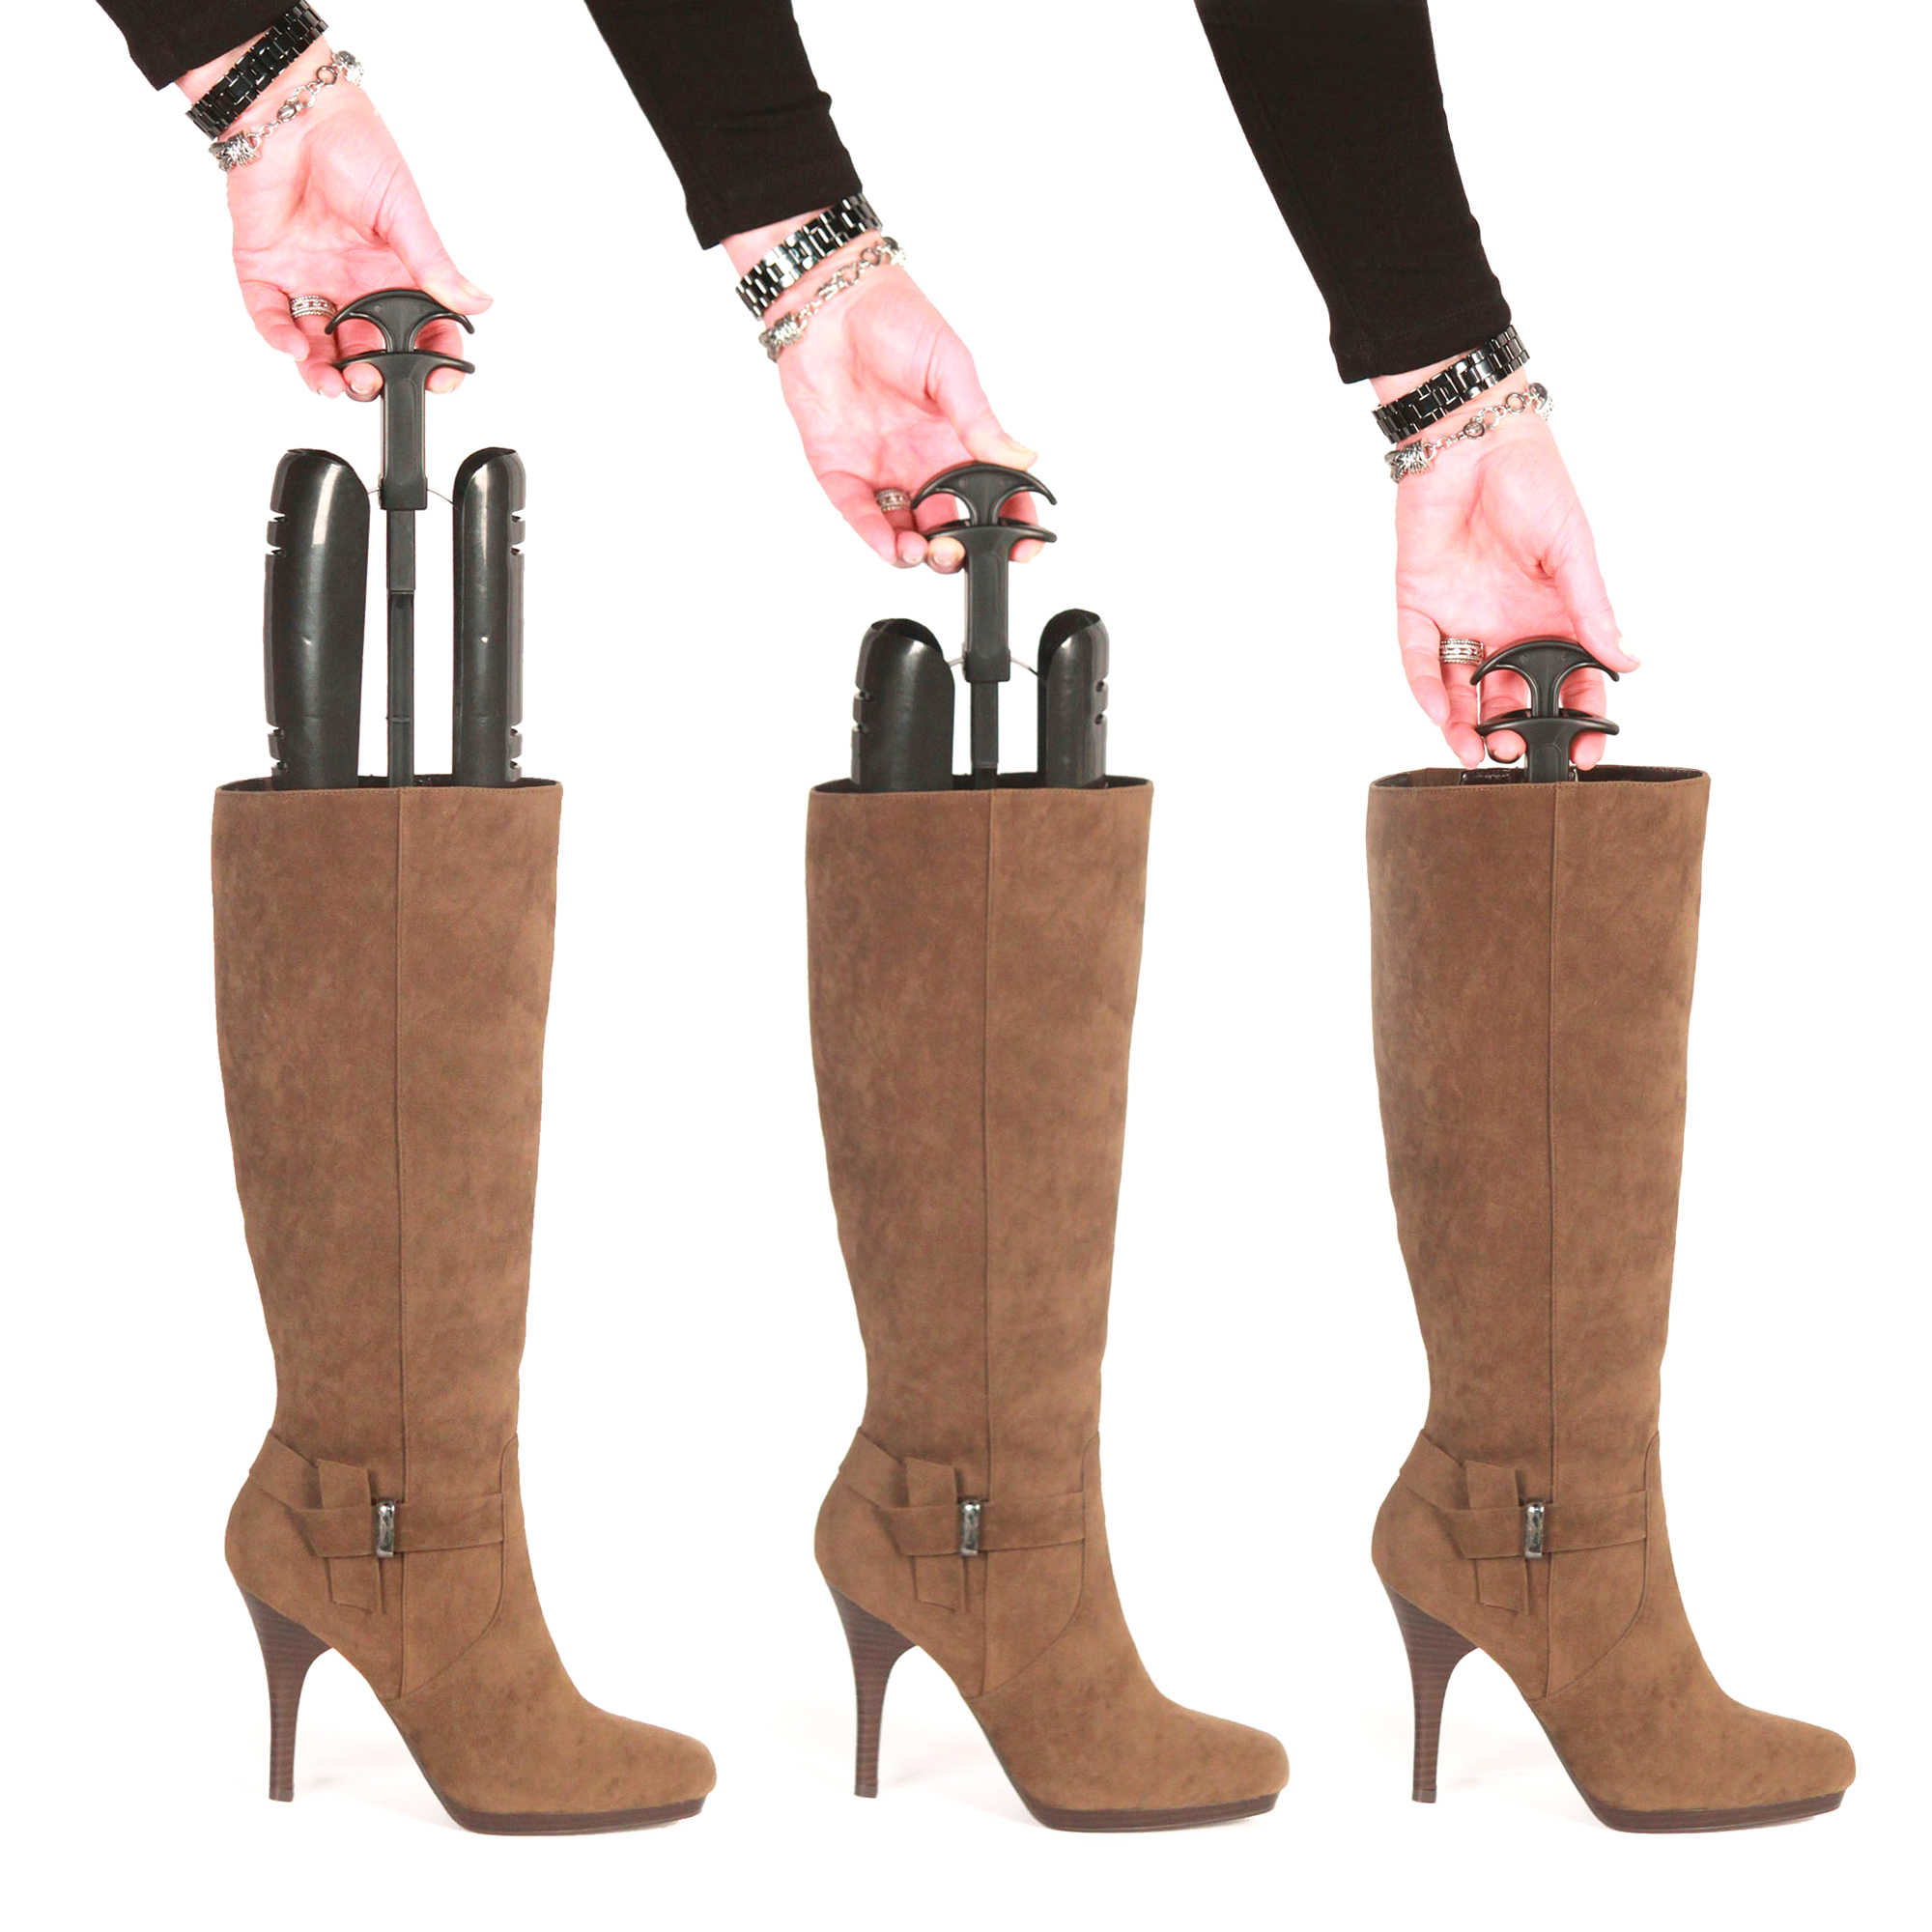 10 Great Ways To Boots